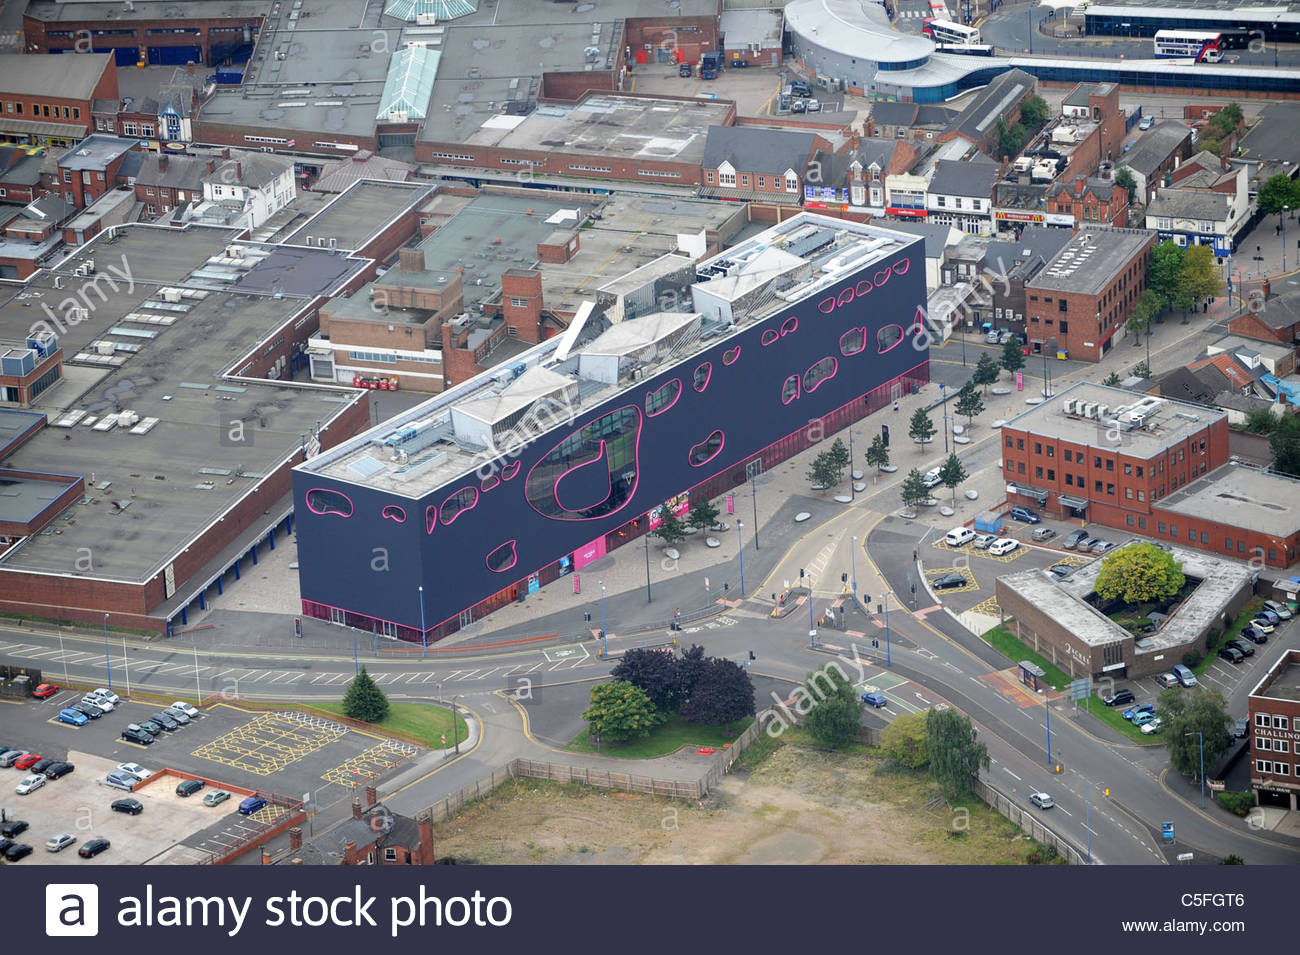 Aerial view of The Public building in West Bromwich Sandwell Uk - Stock Image